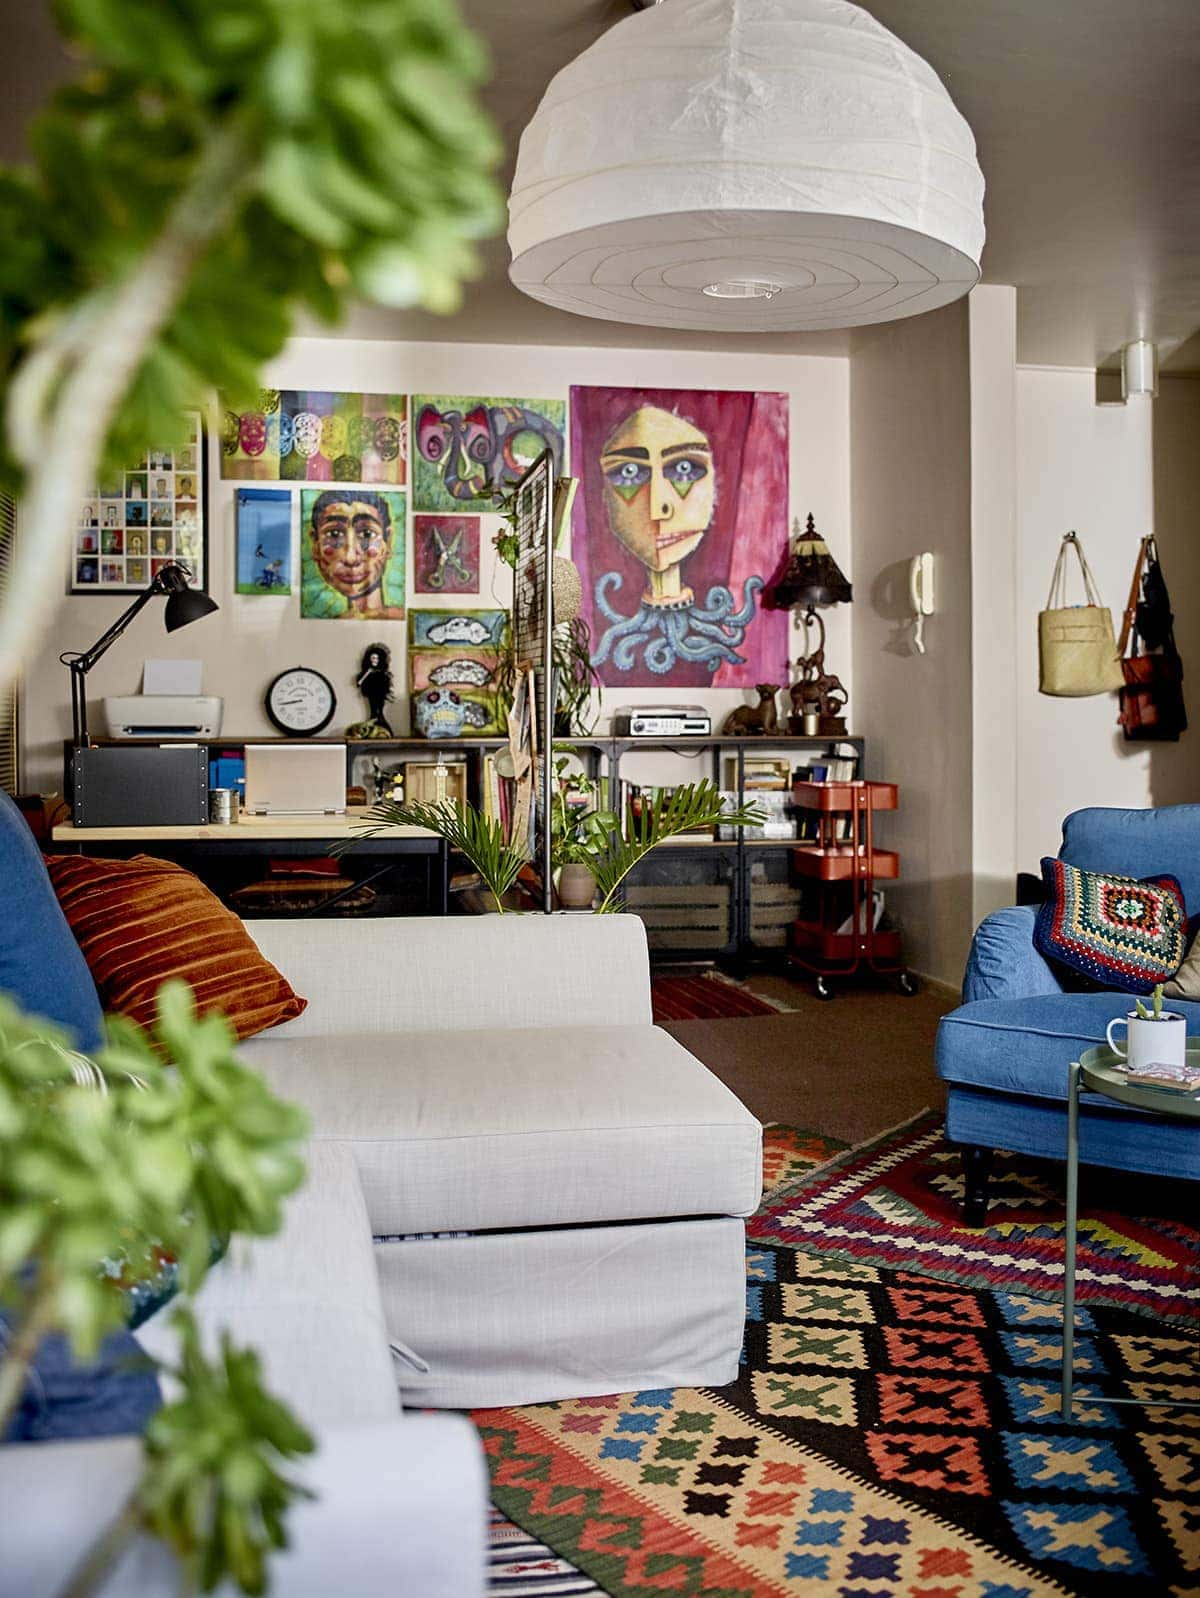 ikea sofa bed and bohemian floor rug in st kilda home